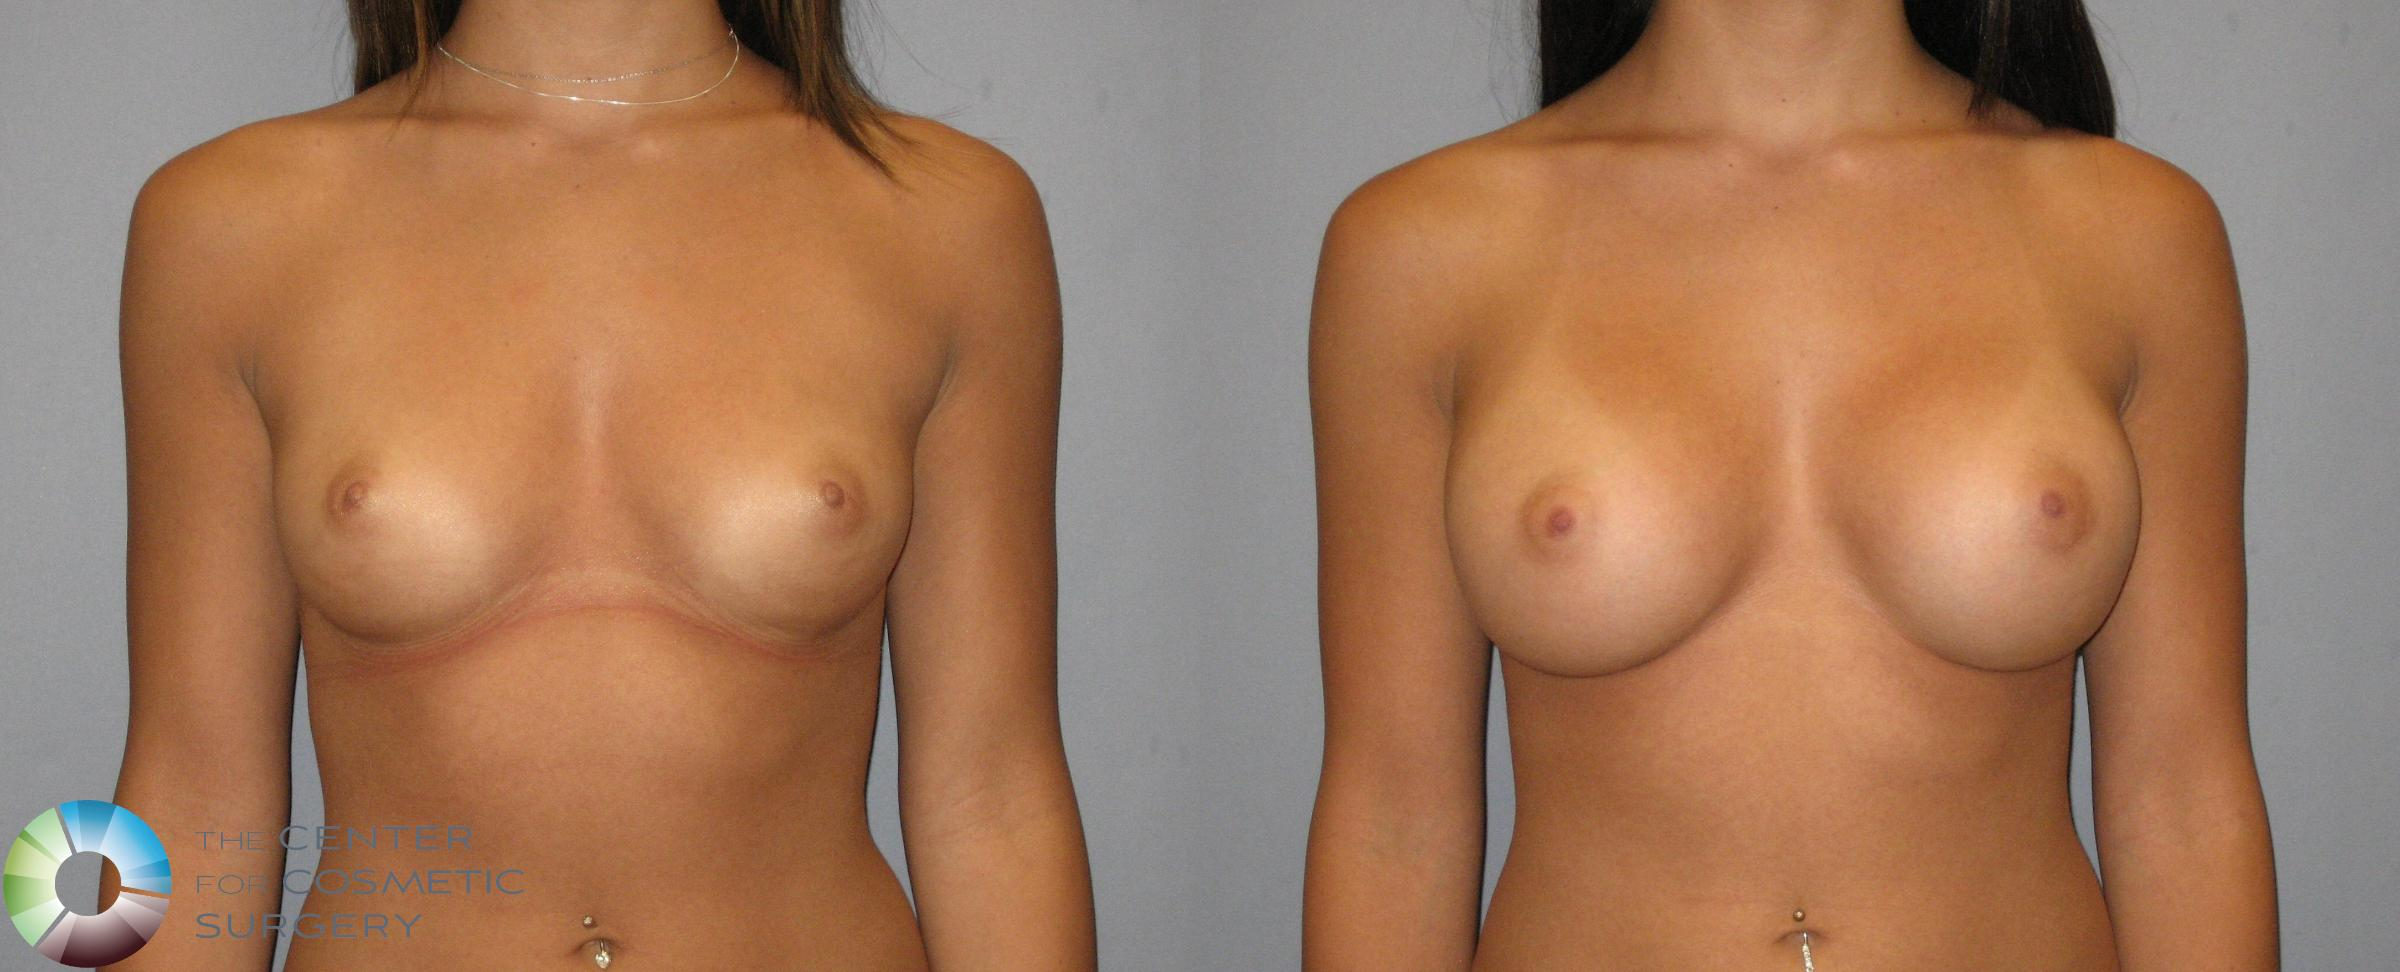 Breast Augmentation Case 318 Before & After View #1 | Golden, CO | The Center for Cosmetic Surgery